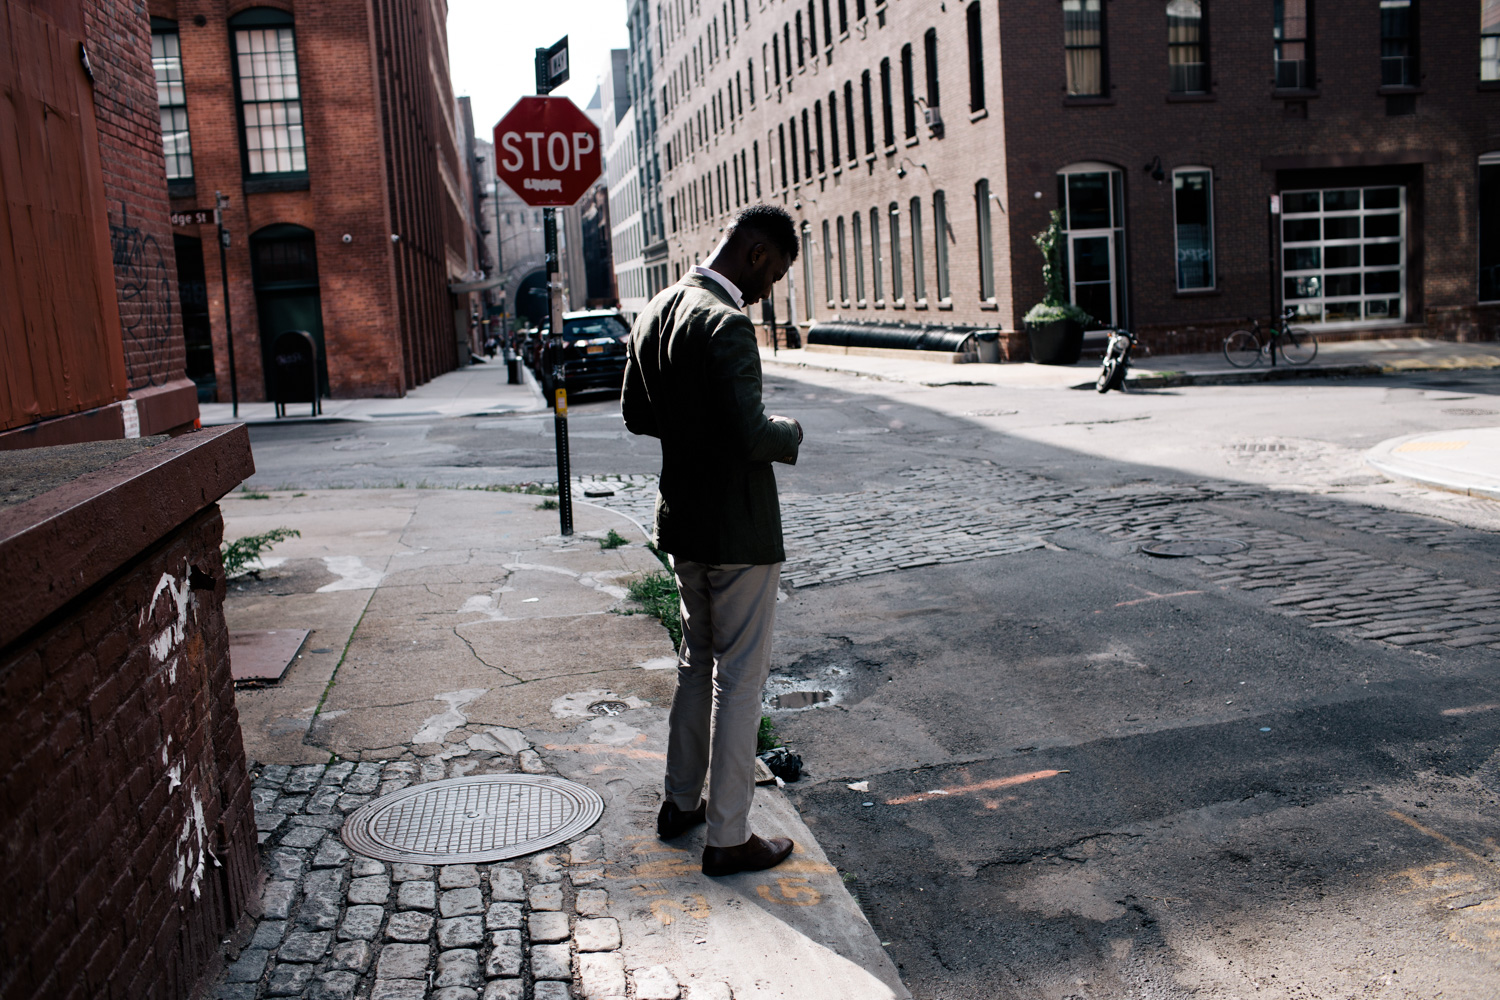 Wayne Wilson in a green jacket in the streets of Dumbo